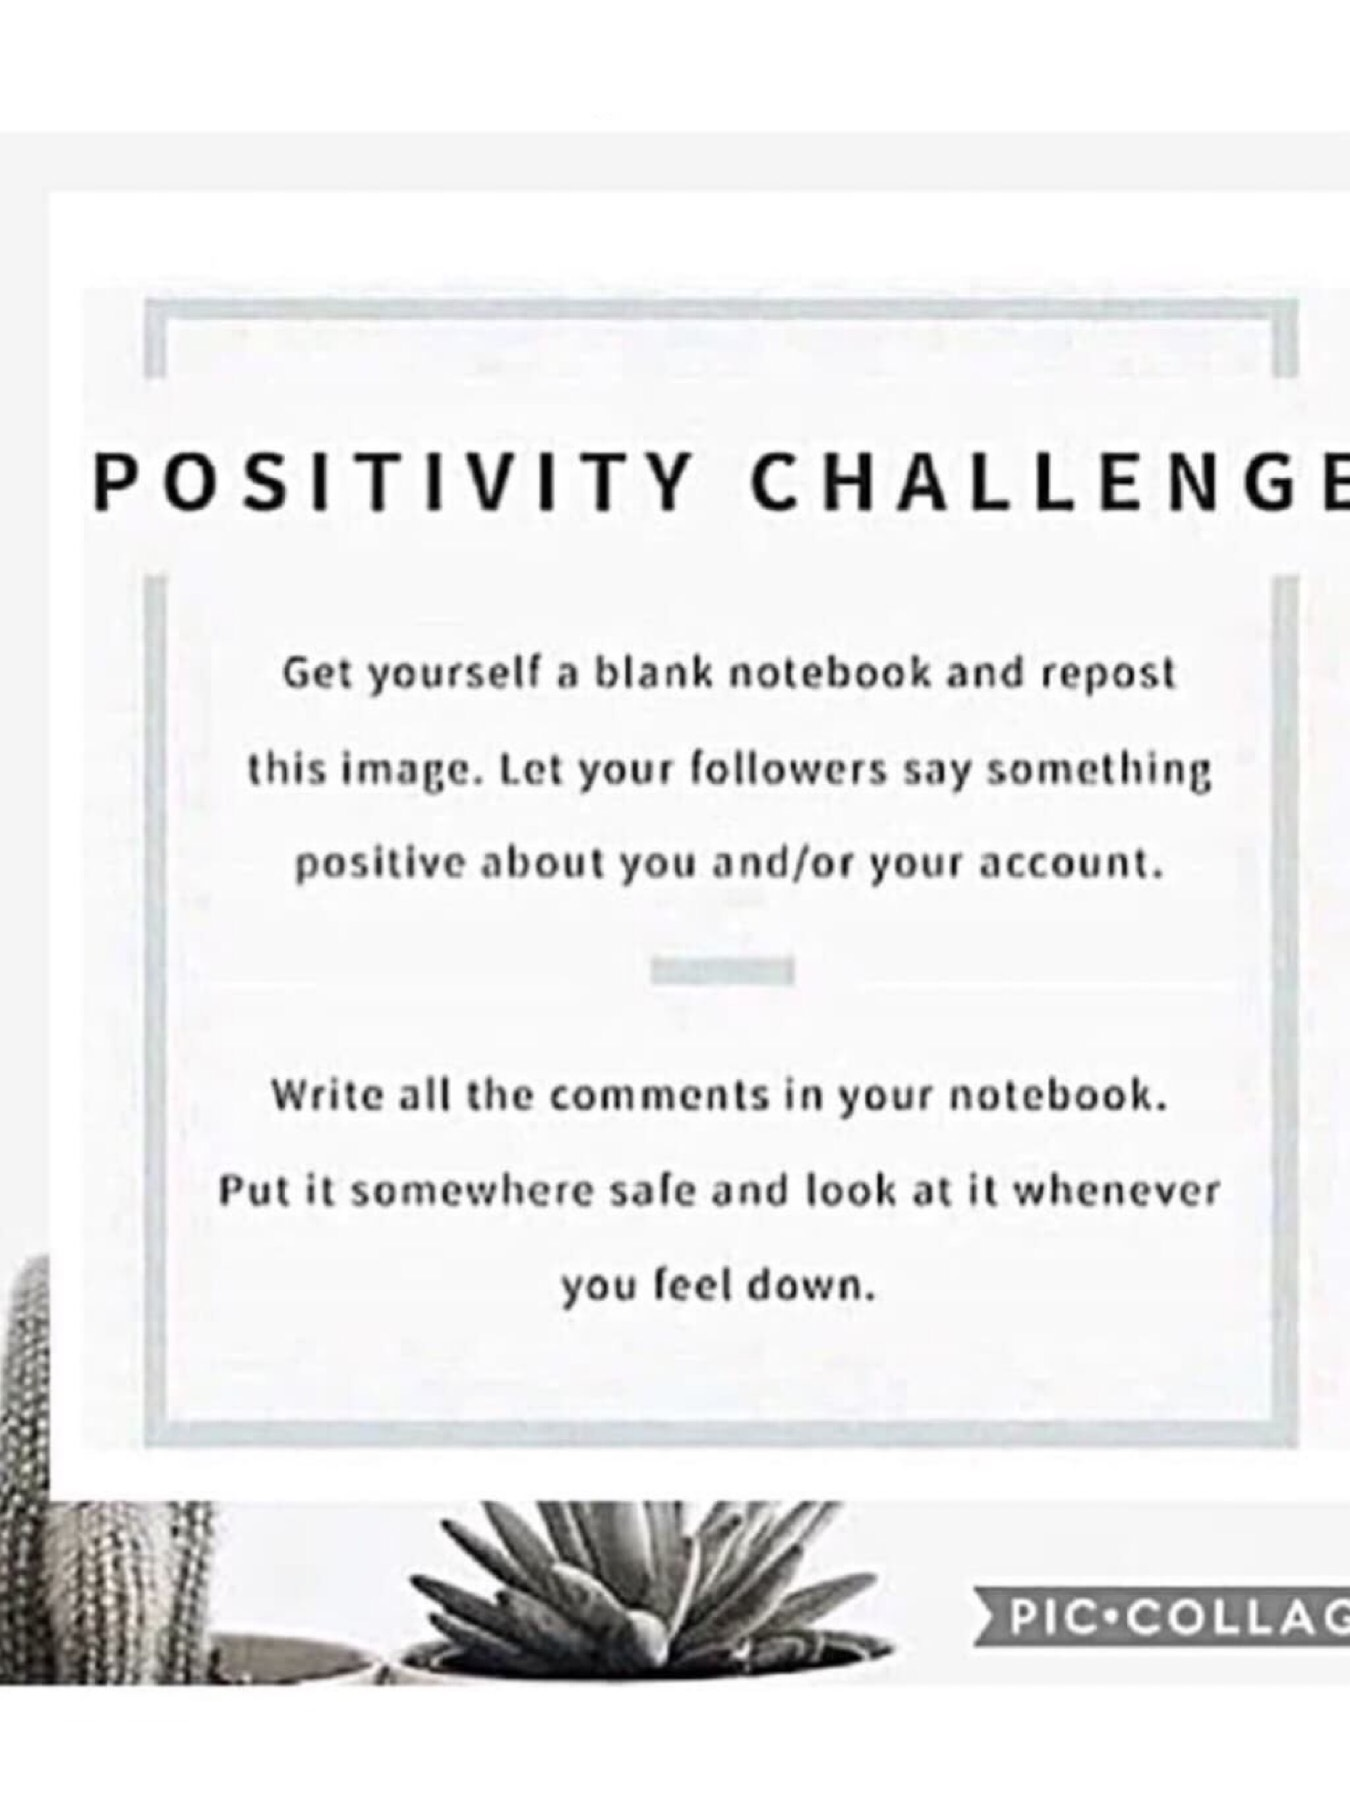 """""""❤️tap❤️"""" Hope u all are doing well! I did this early last year perhaps earlier, but I wanted to do it again mostly cause I think it's actually a very beautiful challenge. Spreading positive vibes any way we can~💕💕"""